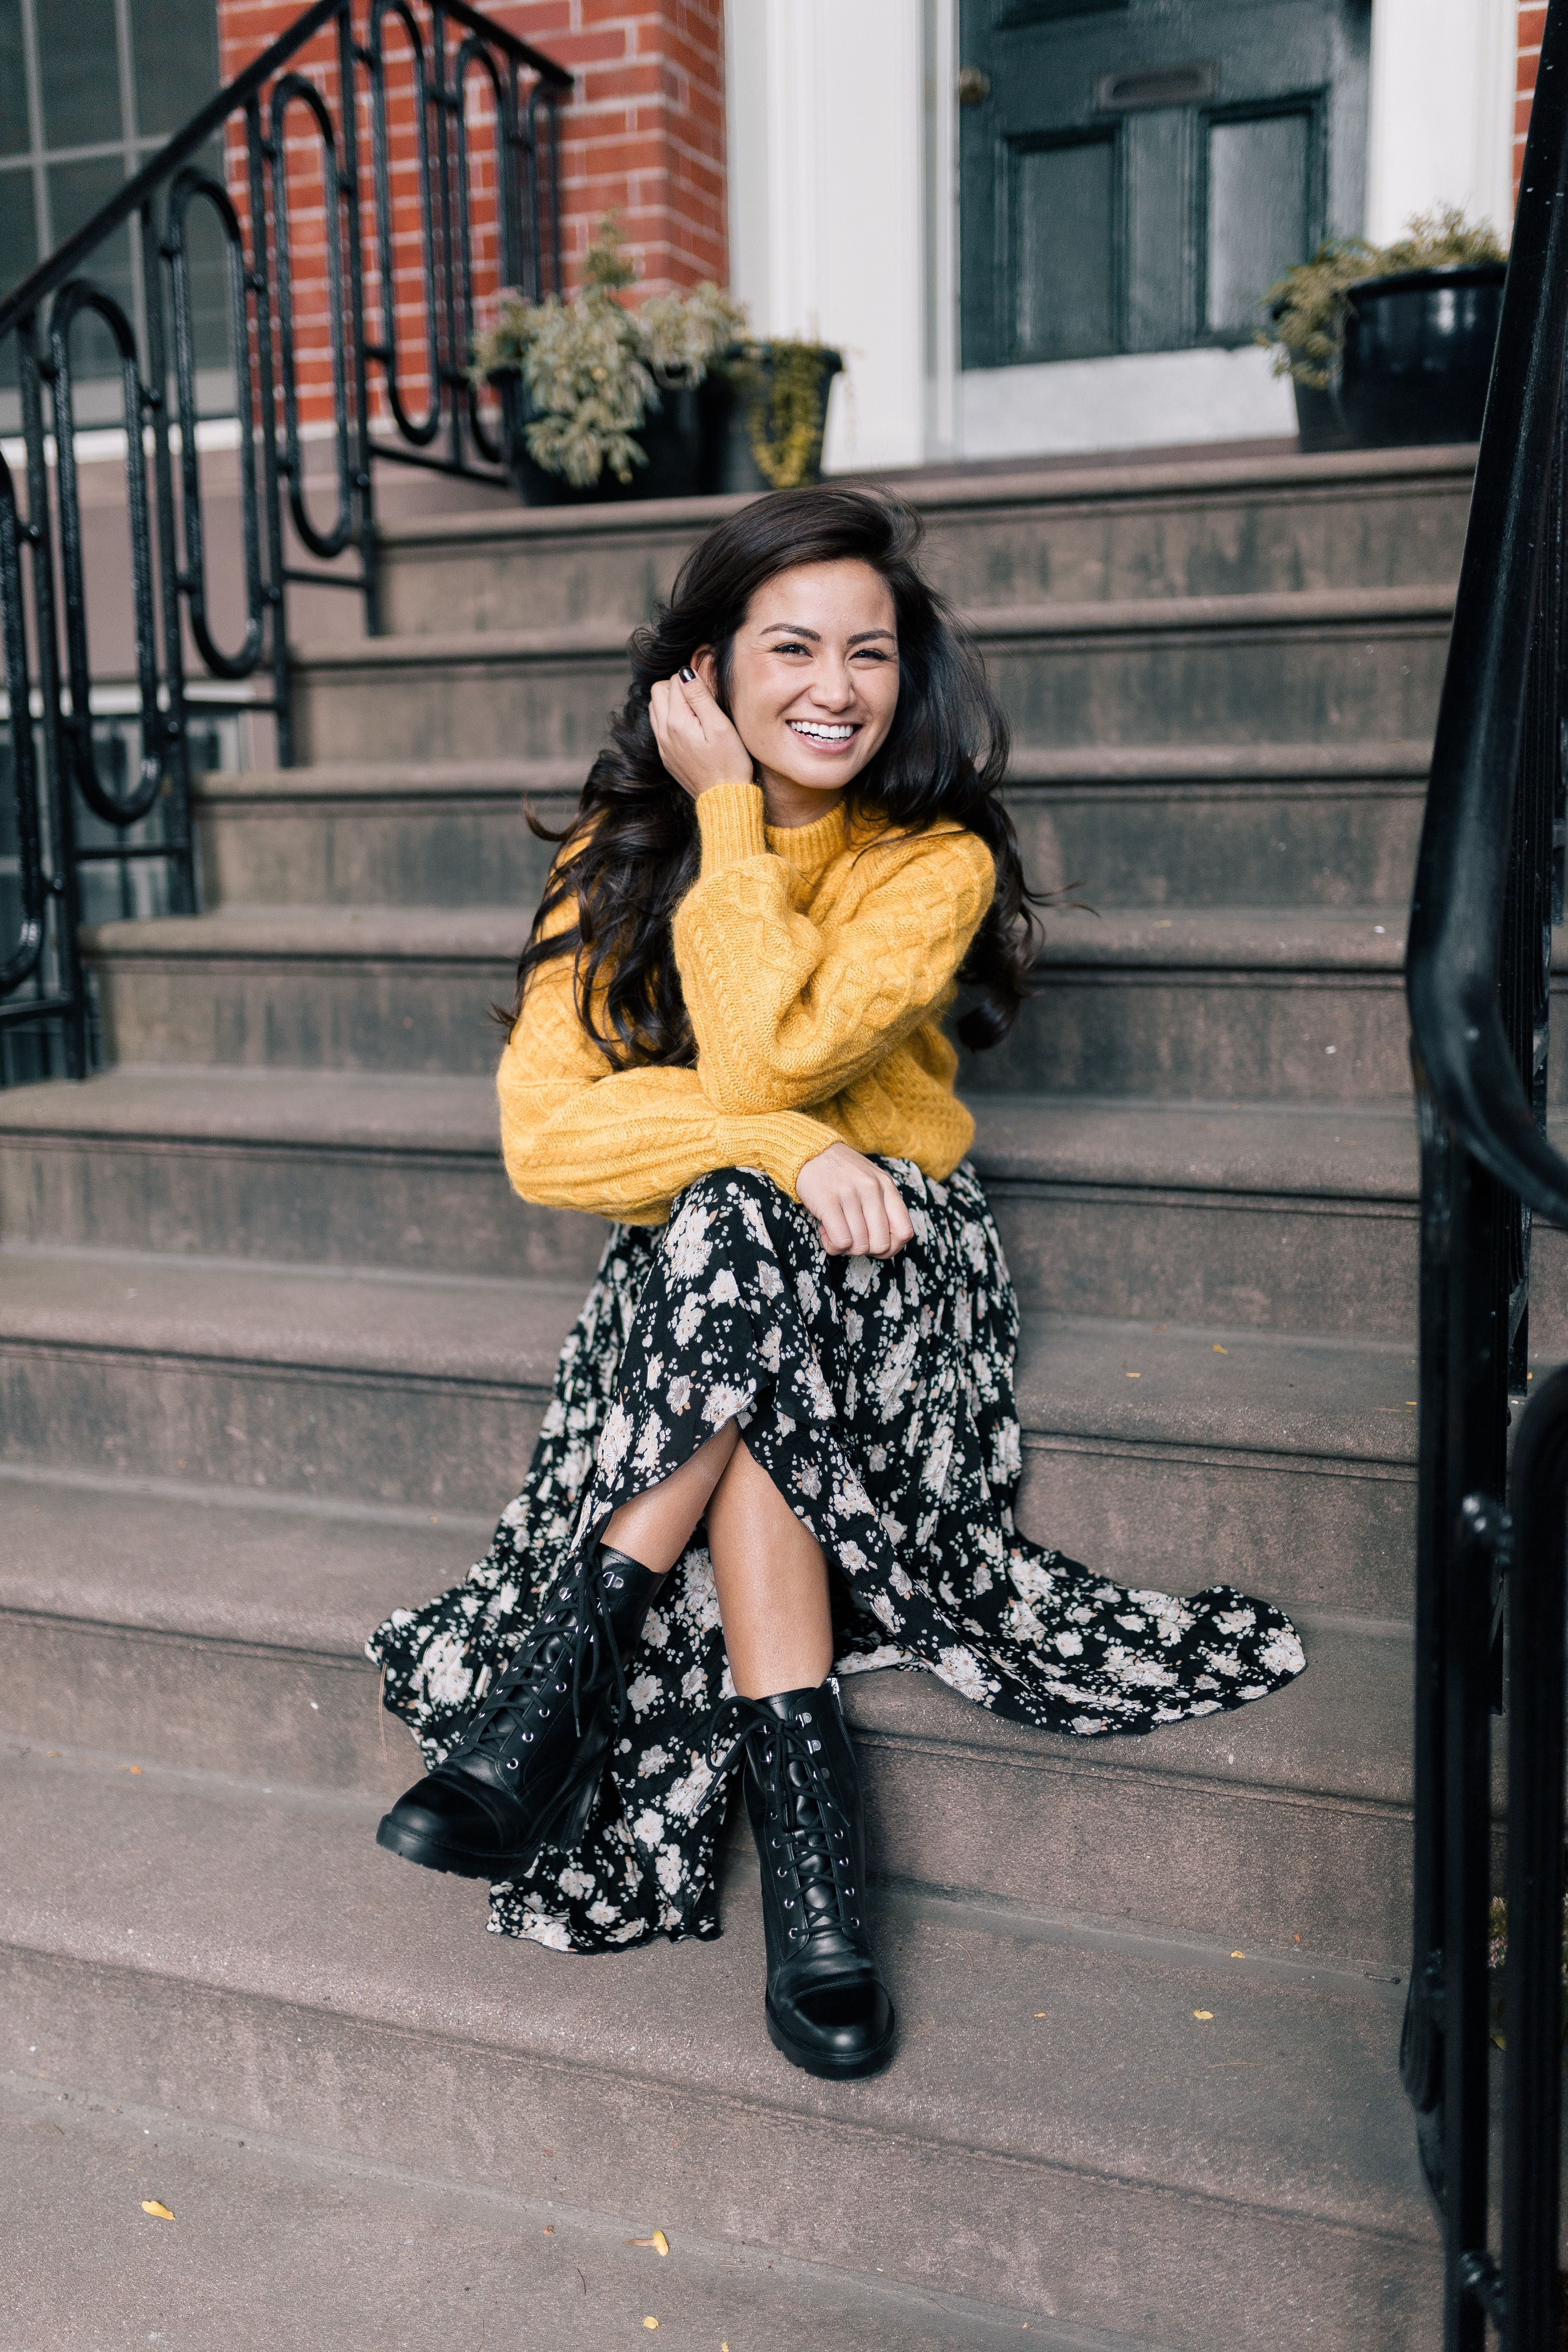 a343b4abfc DSW shoes fall | Fall outfit ideas | NYC street style Fall | nyc fashion  bloggers